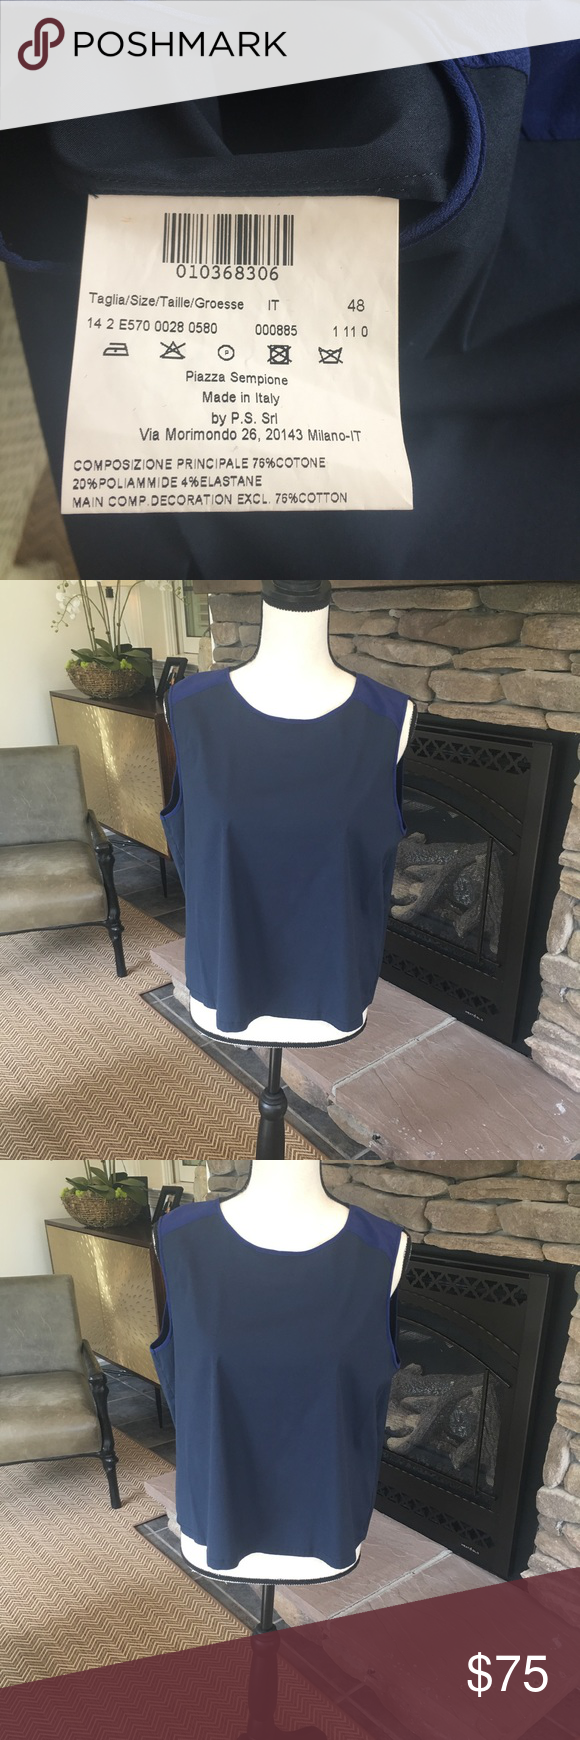 Piazza Sempione Top Size 48 Piazza Sempione Top Size 48. Great condition. Beautiful shirt. Piazza Sempione Tops